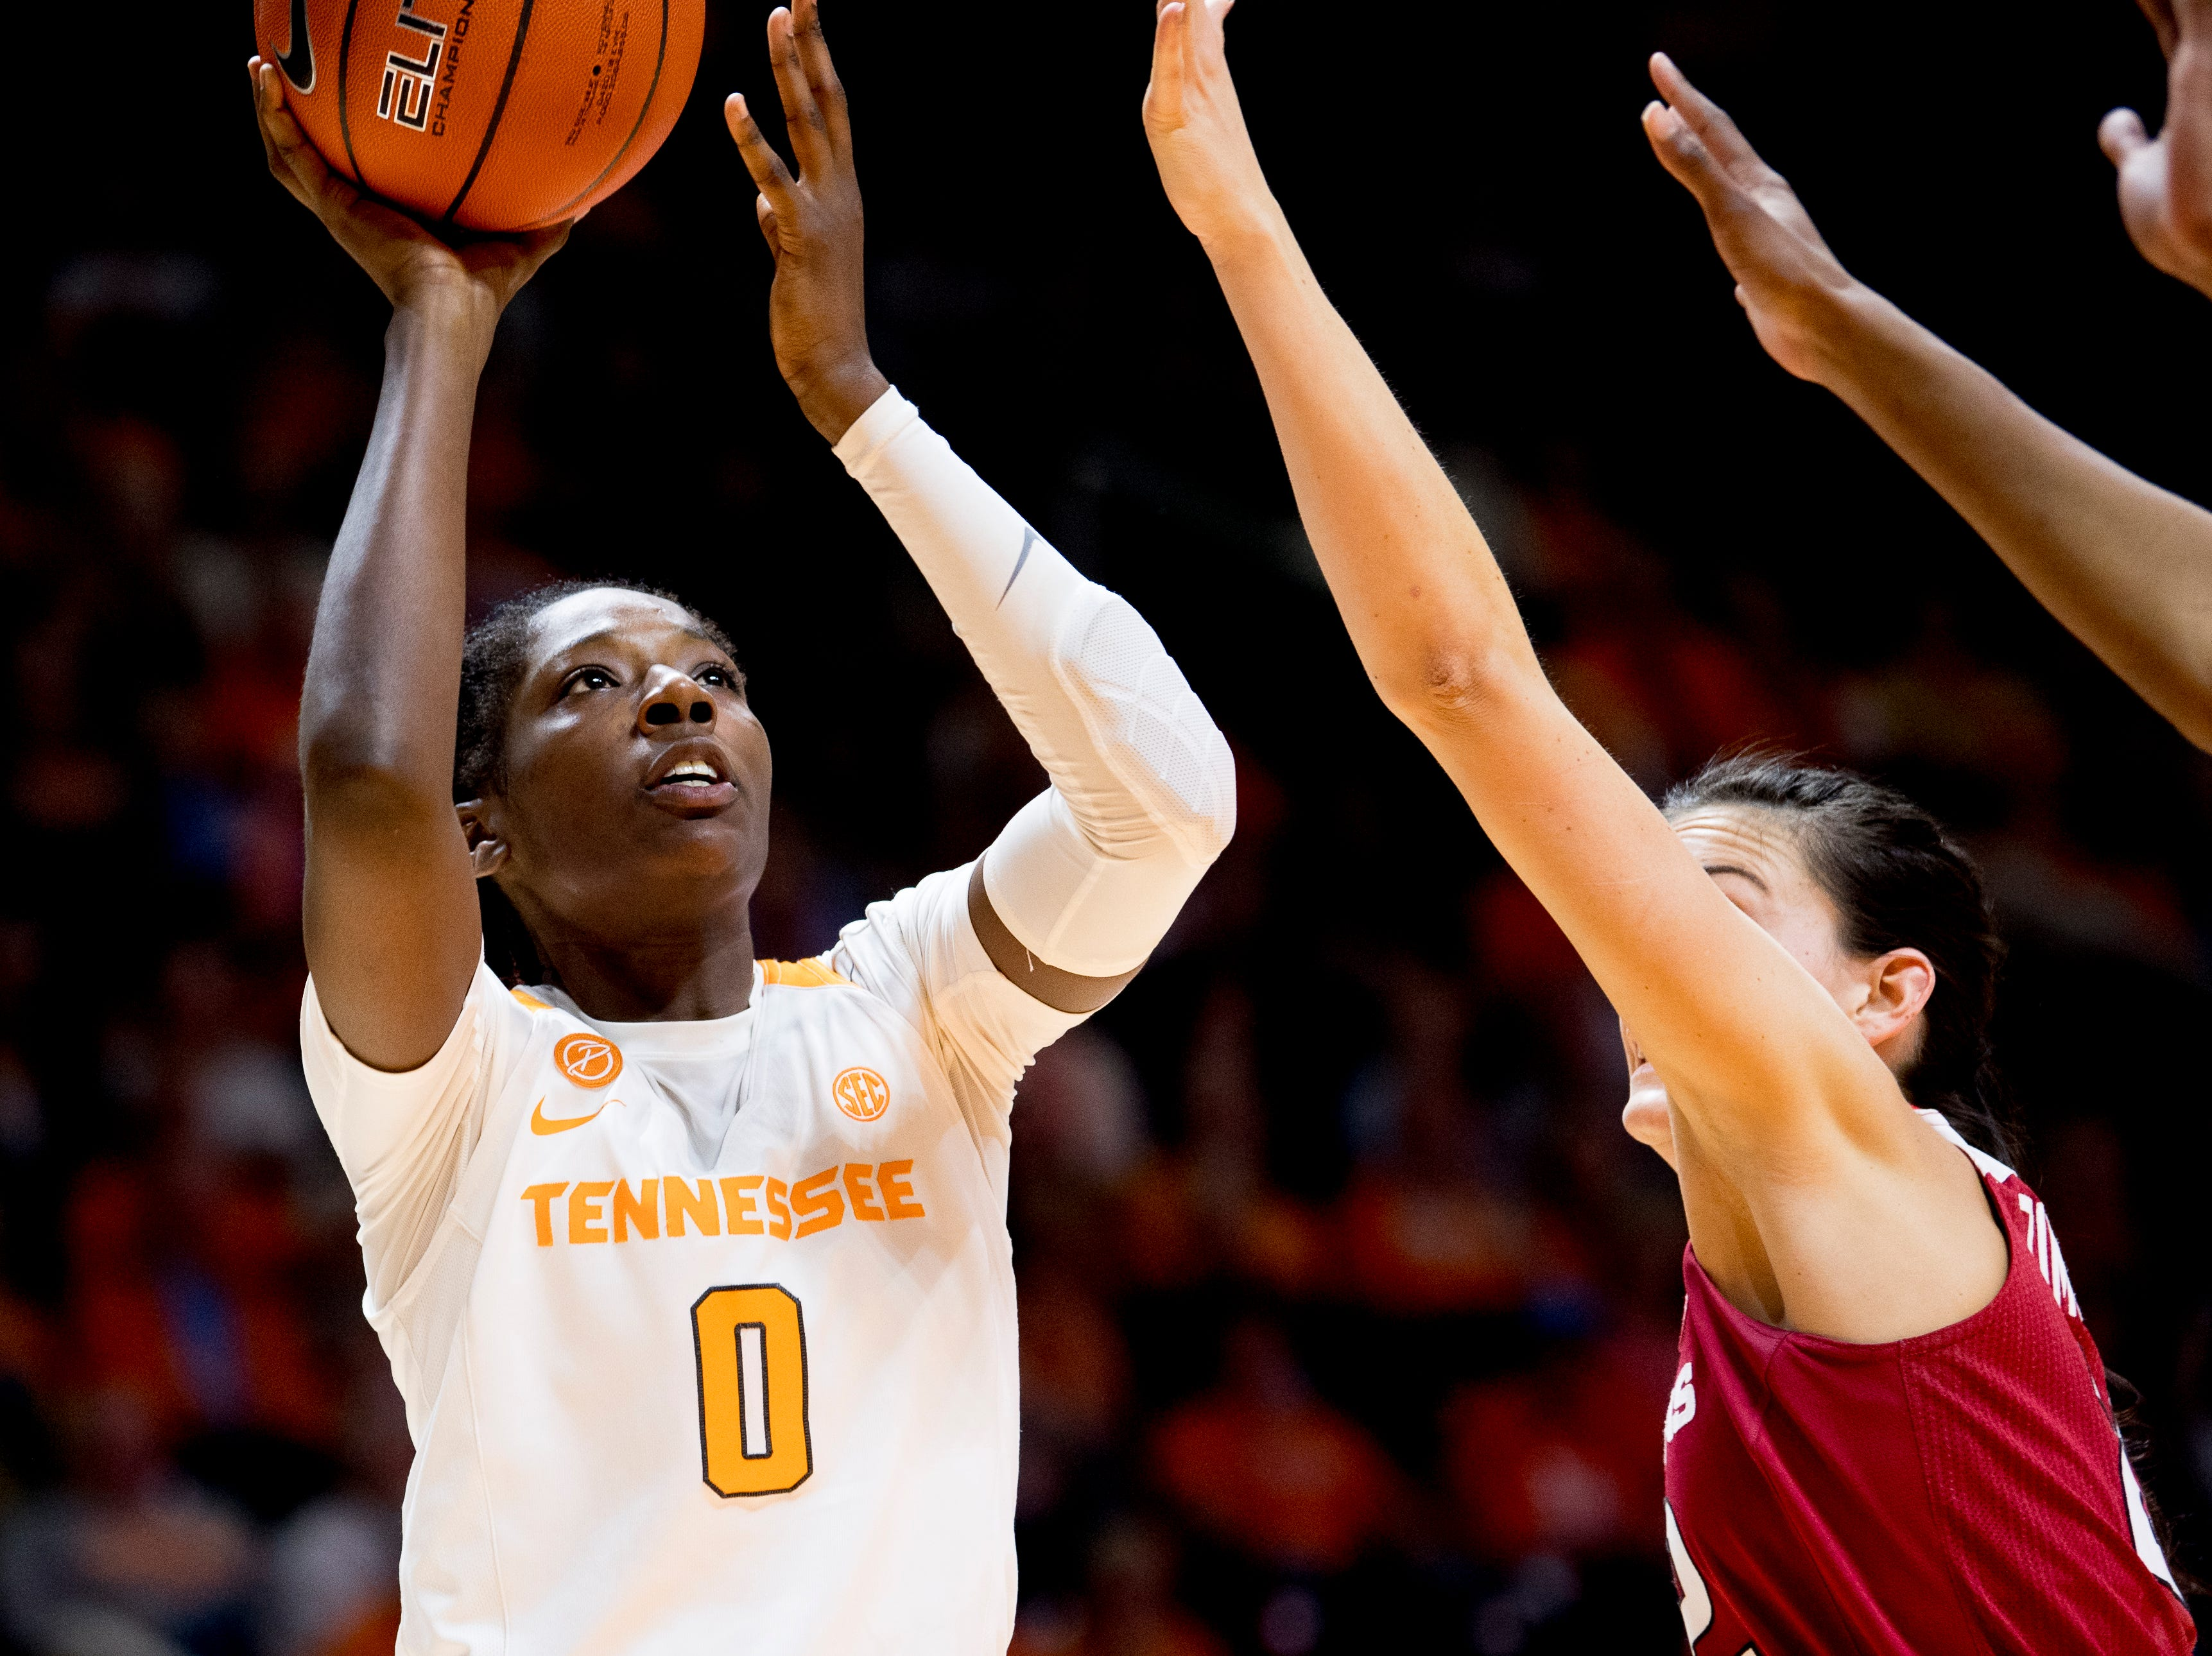 Tennessee guard/forward Rennia Davis (0) shoots the ball during a game between Tennessee and Arkansas at Thompson-Boling Arena in Knoxville, Tennessee on Monday, January 21, 2019.